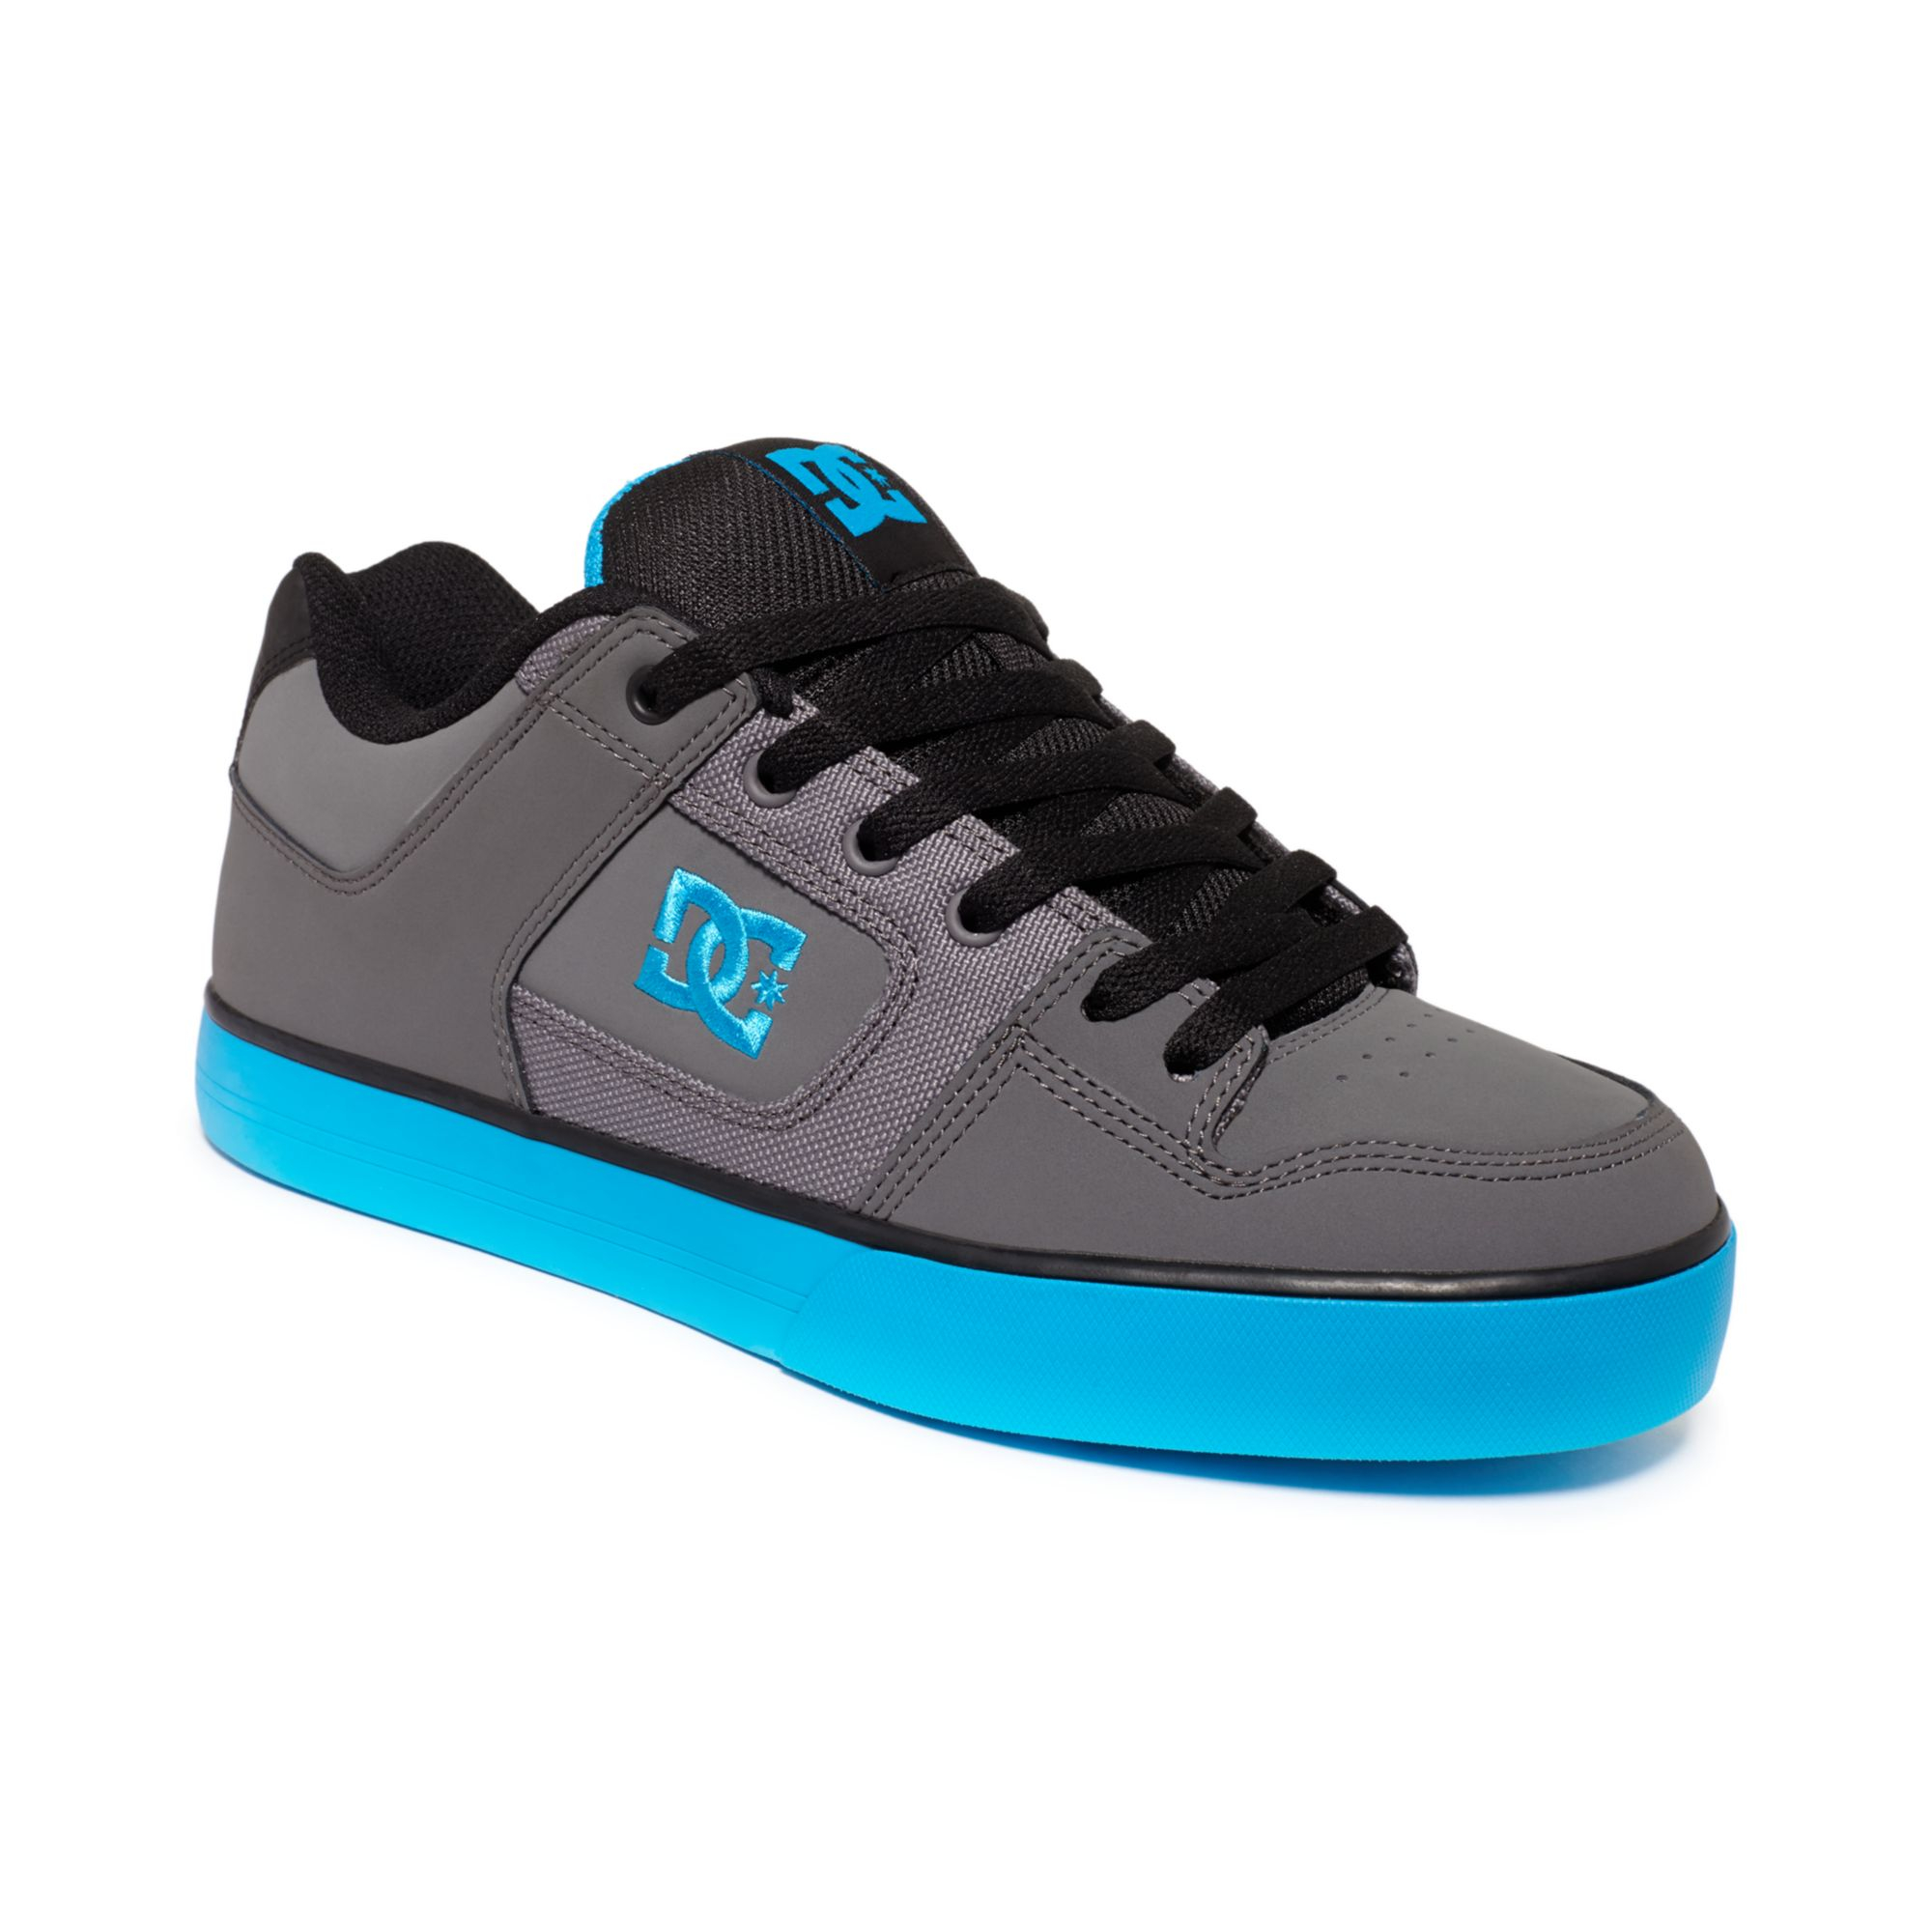 dc shoes pure sneakers in gray for men battleship turquoise lyst. Black Bedroom Furniture Sets. Home Design Ideas